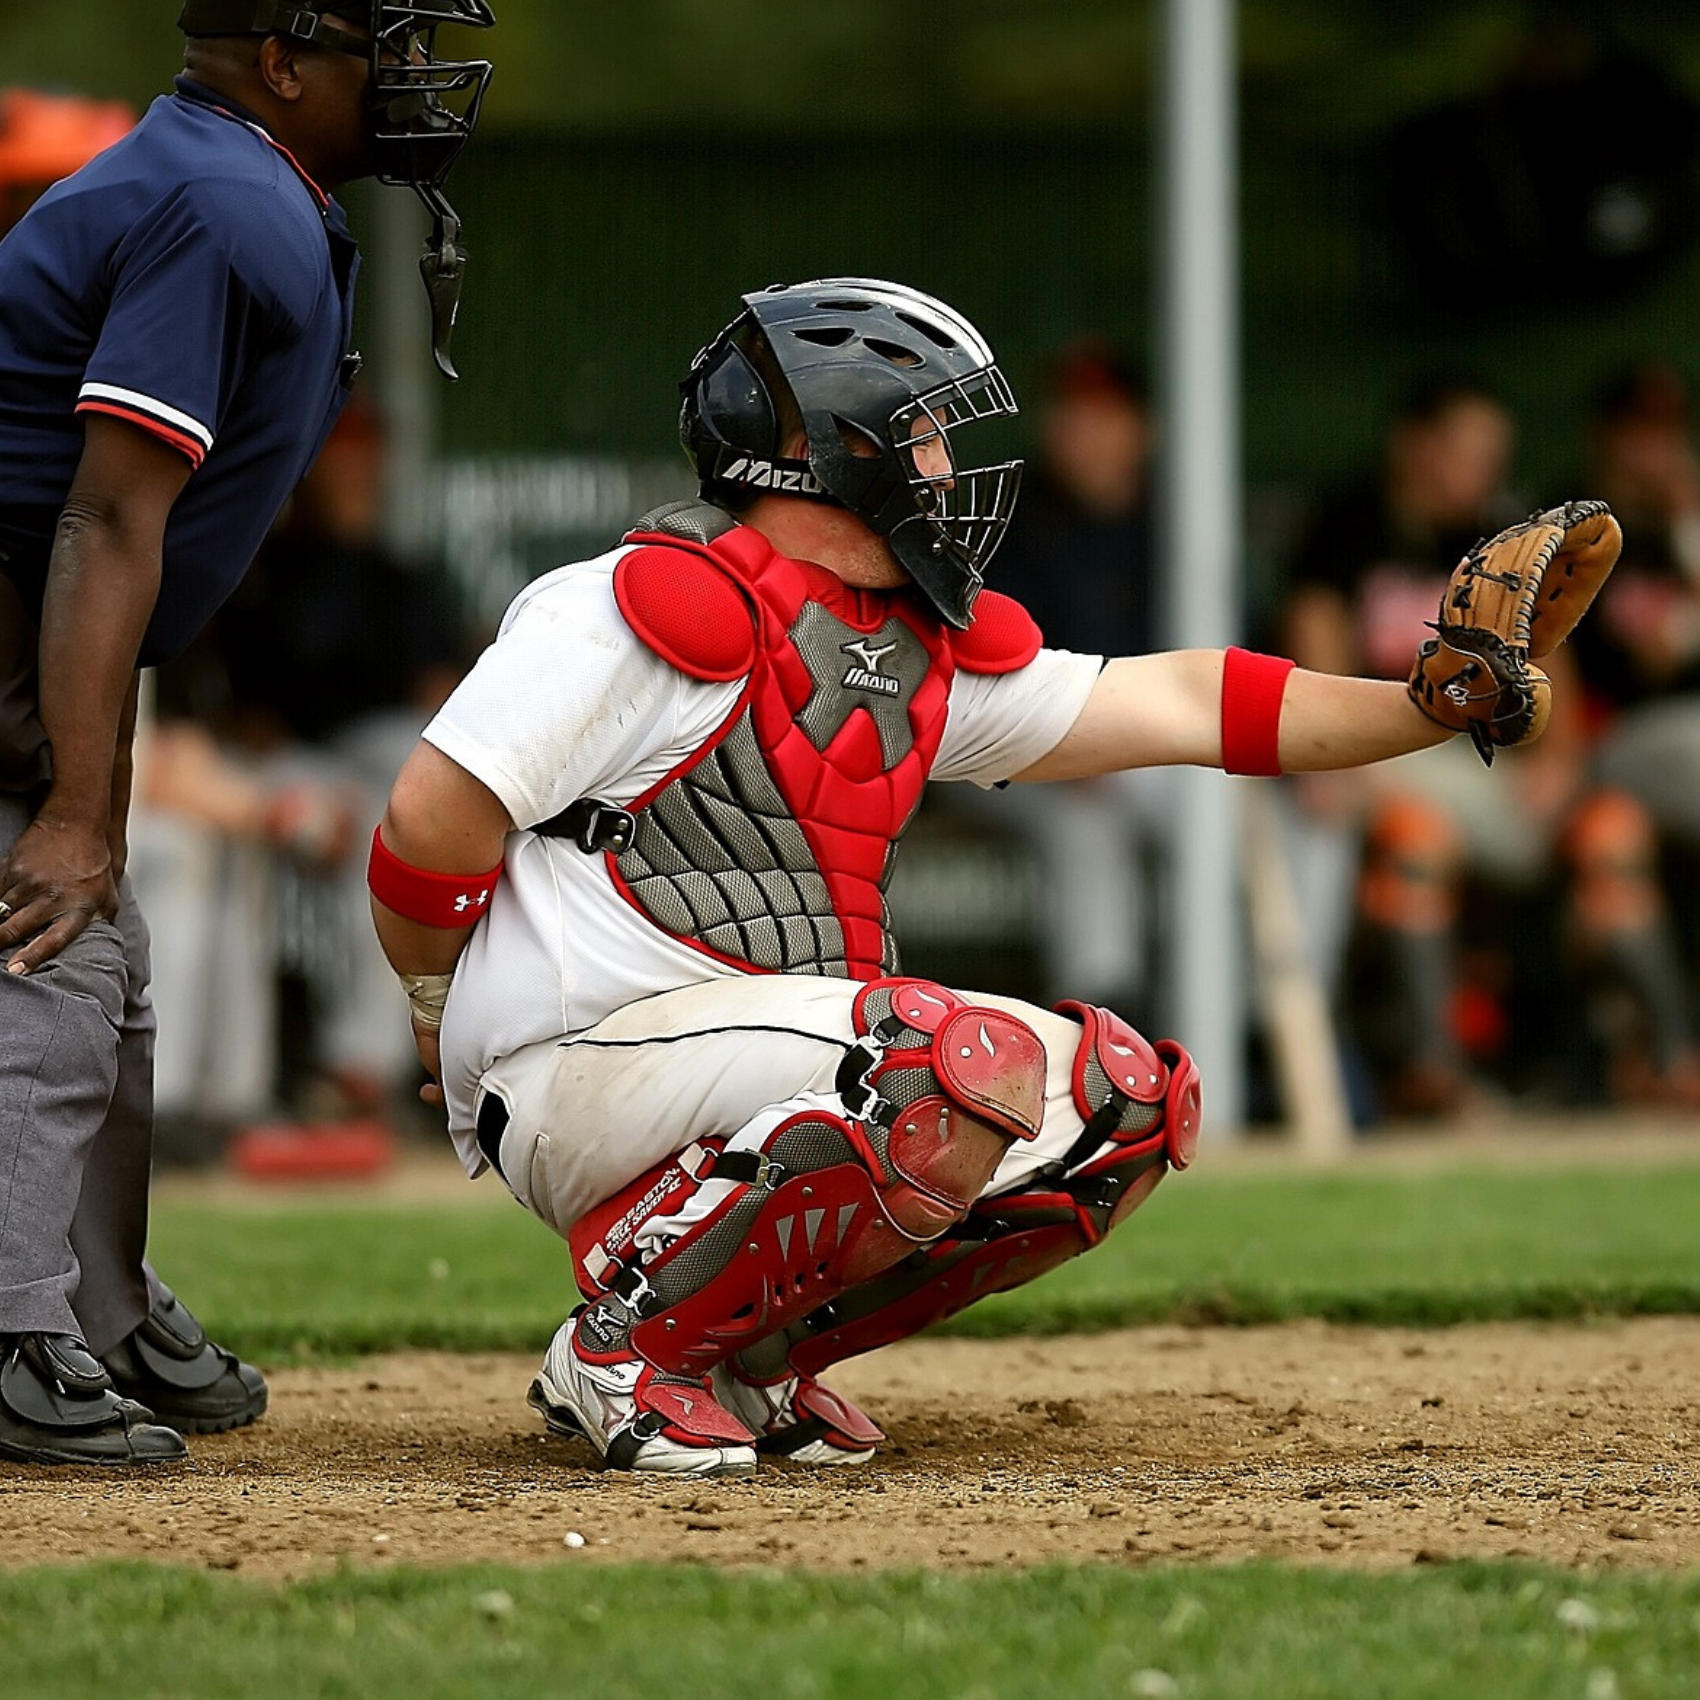 5 Important Things to Remember When Picking Out Catcher's Gear